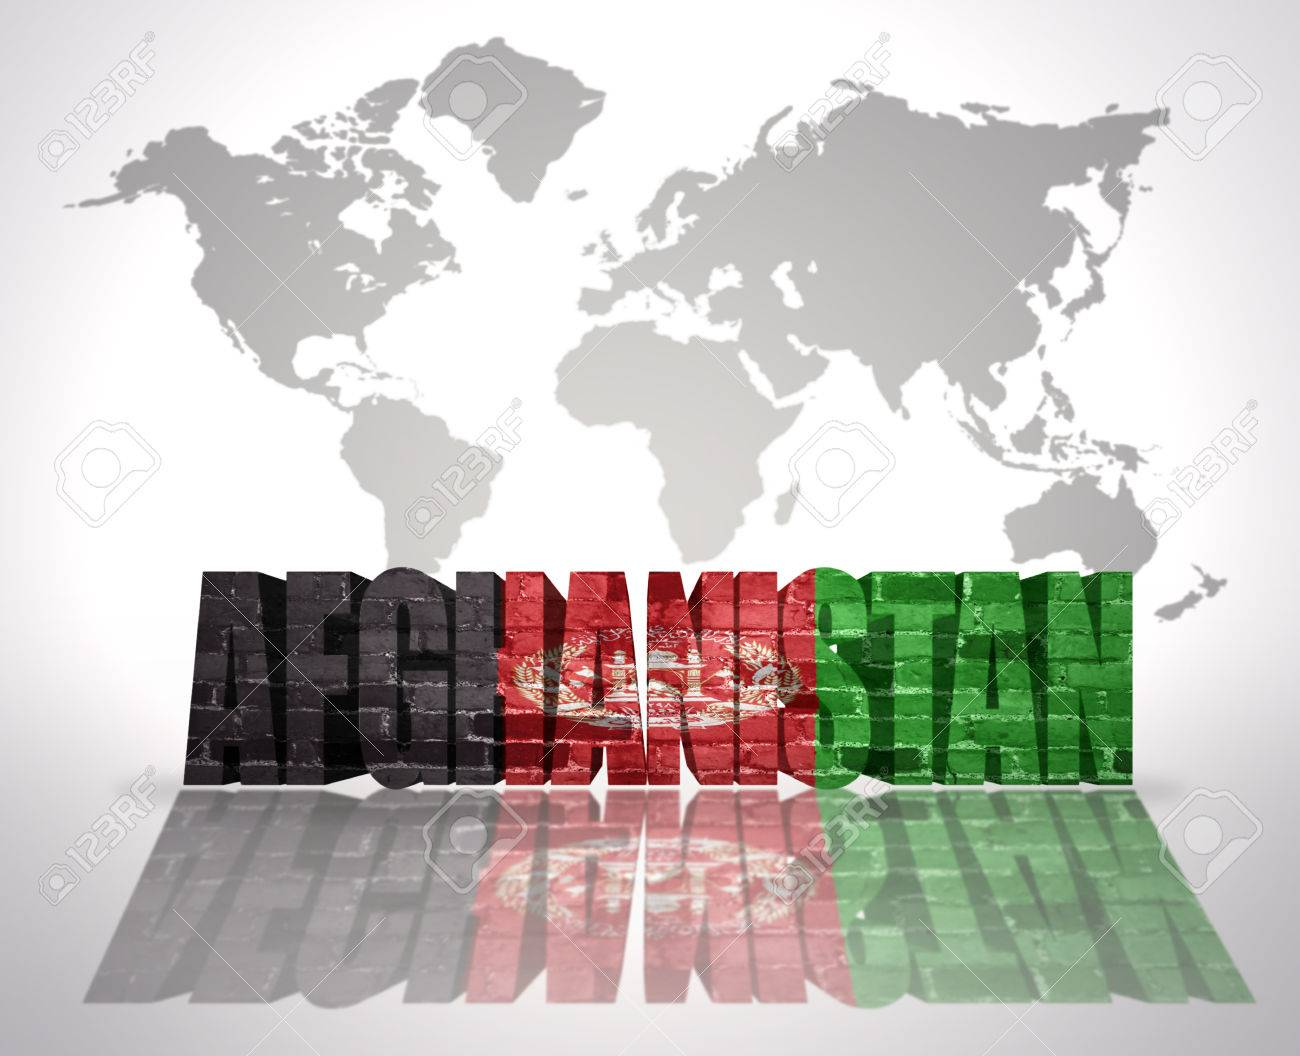 Word afghanistan with afghan flag on a world map background stock stock photo word afghanistan with afghan flag on a world map background gumiabroncs Choice Image